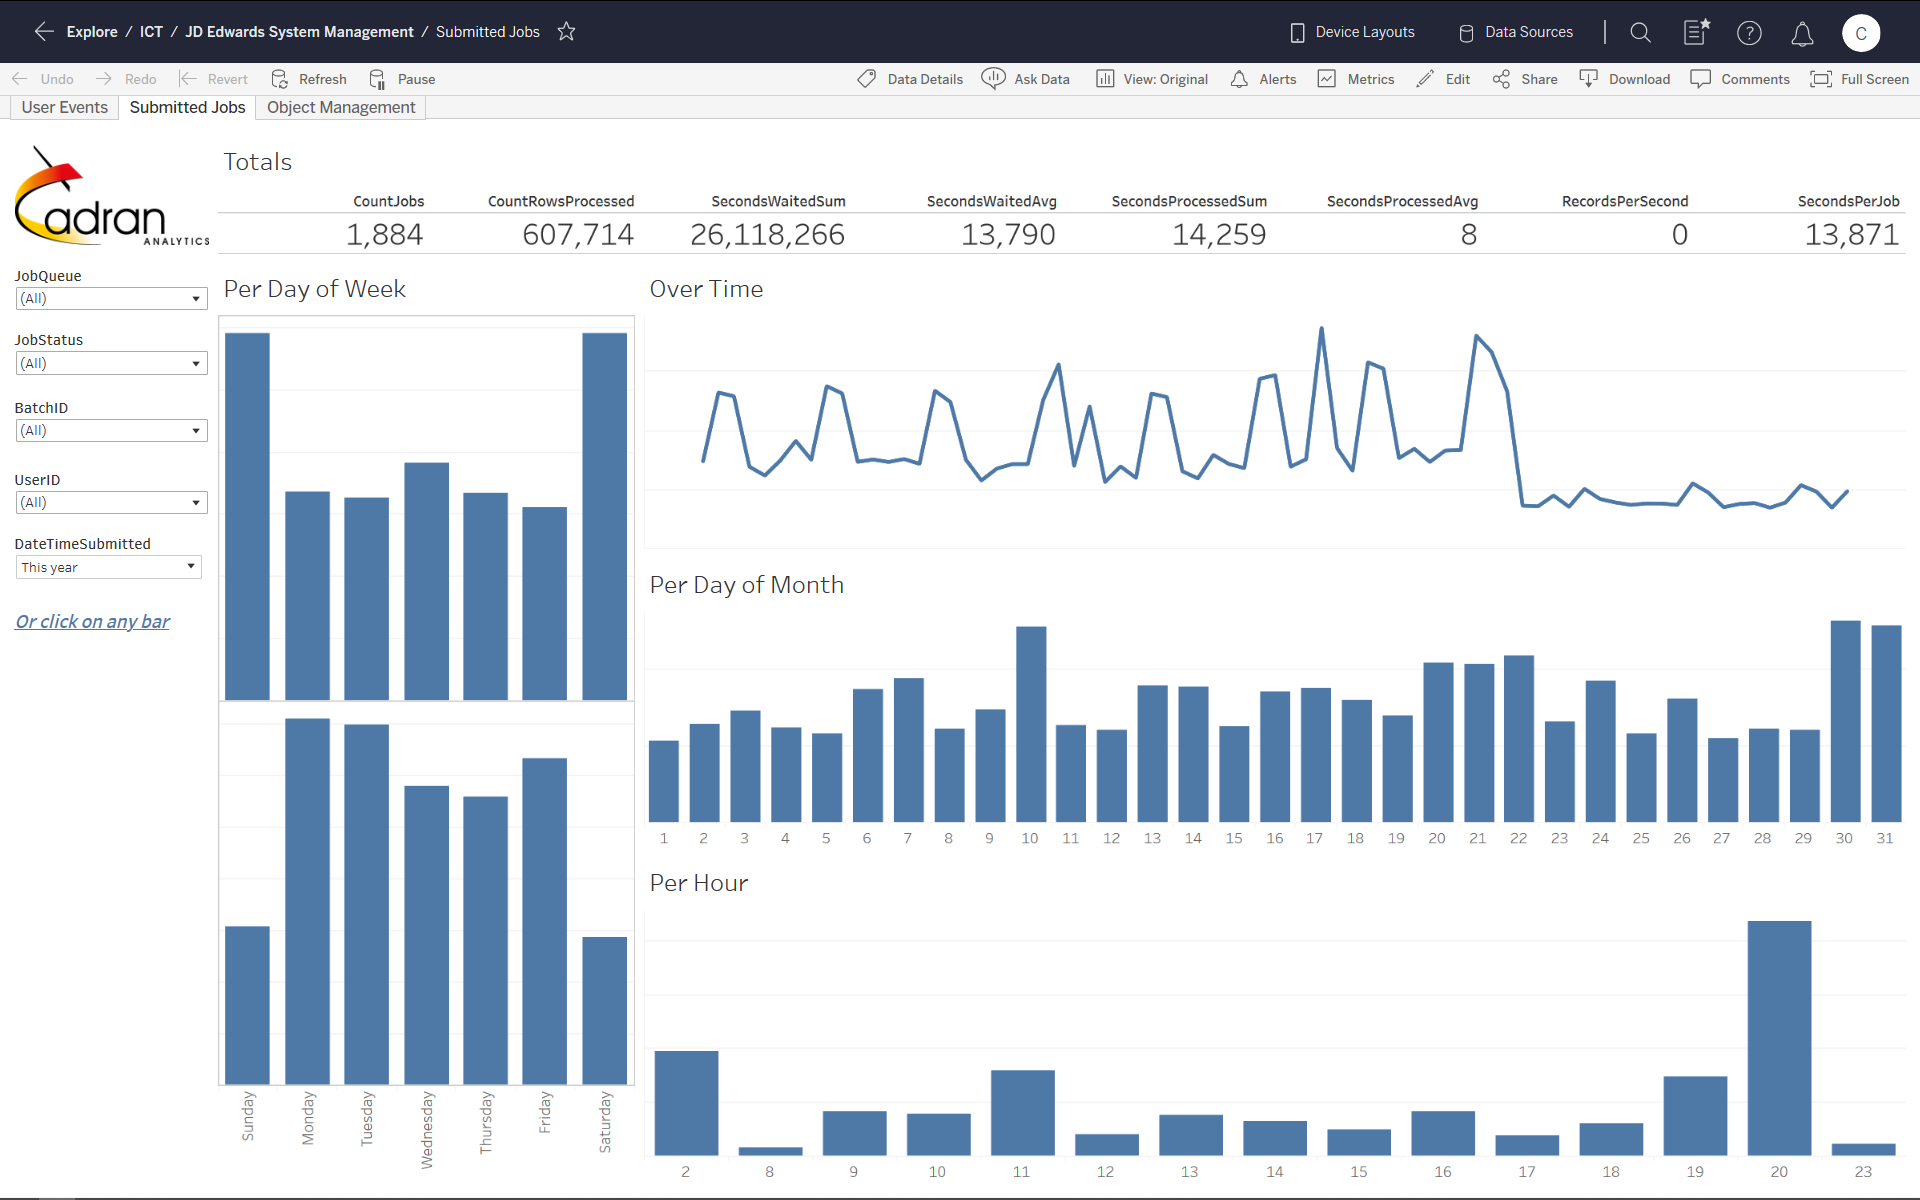 tableau dashboard submitted jobs jd edwards